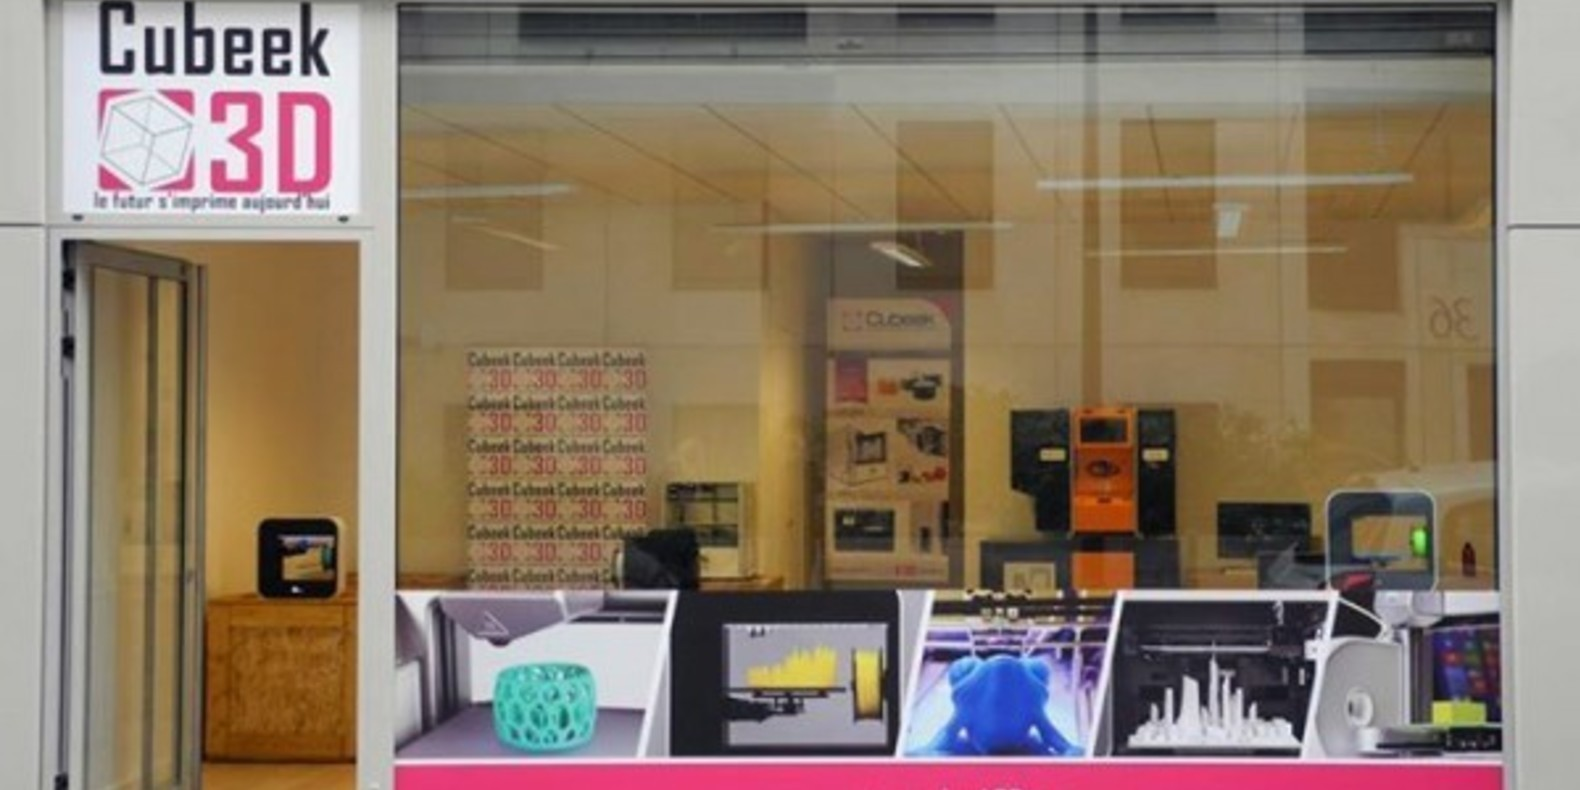 Cubeek 3D, the first 3D printer shop in France